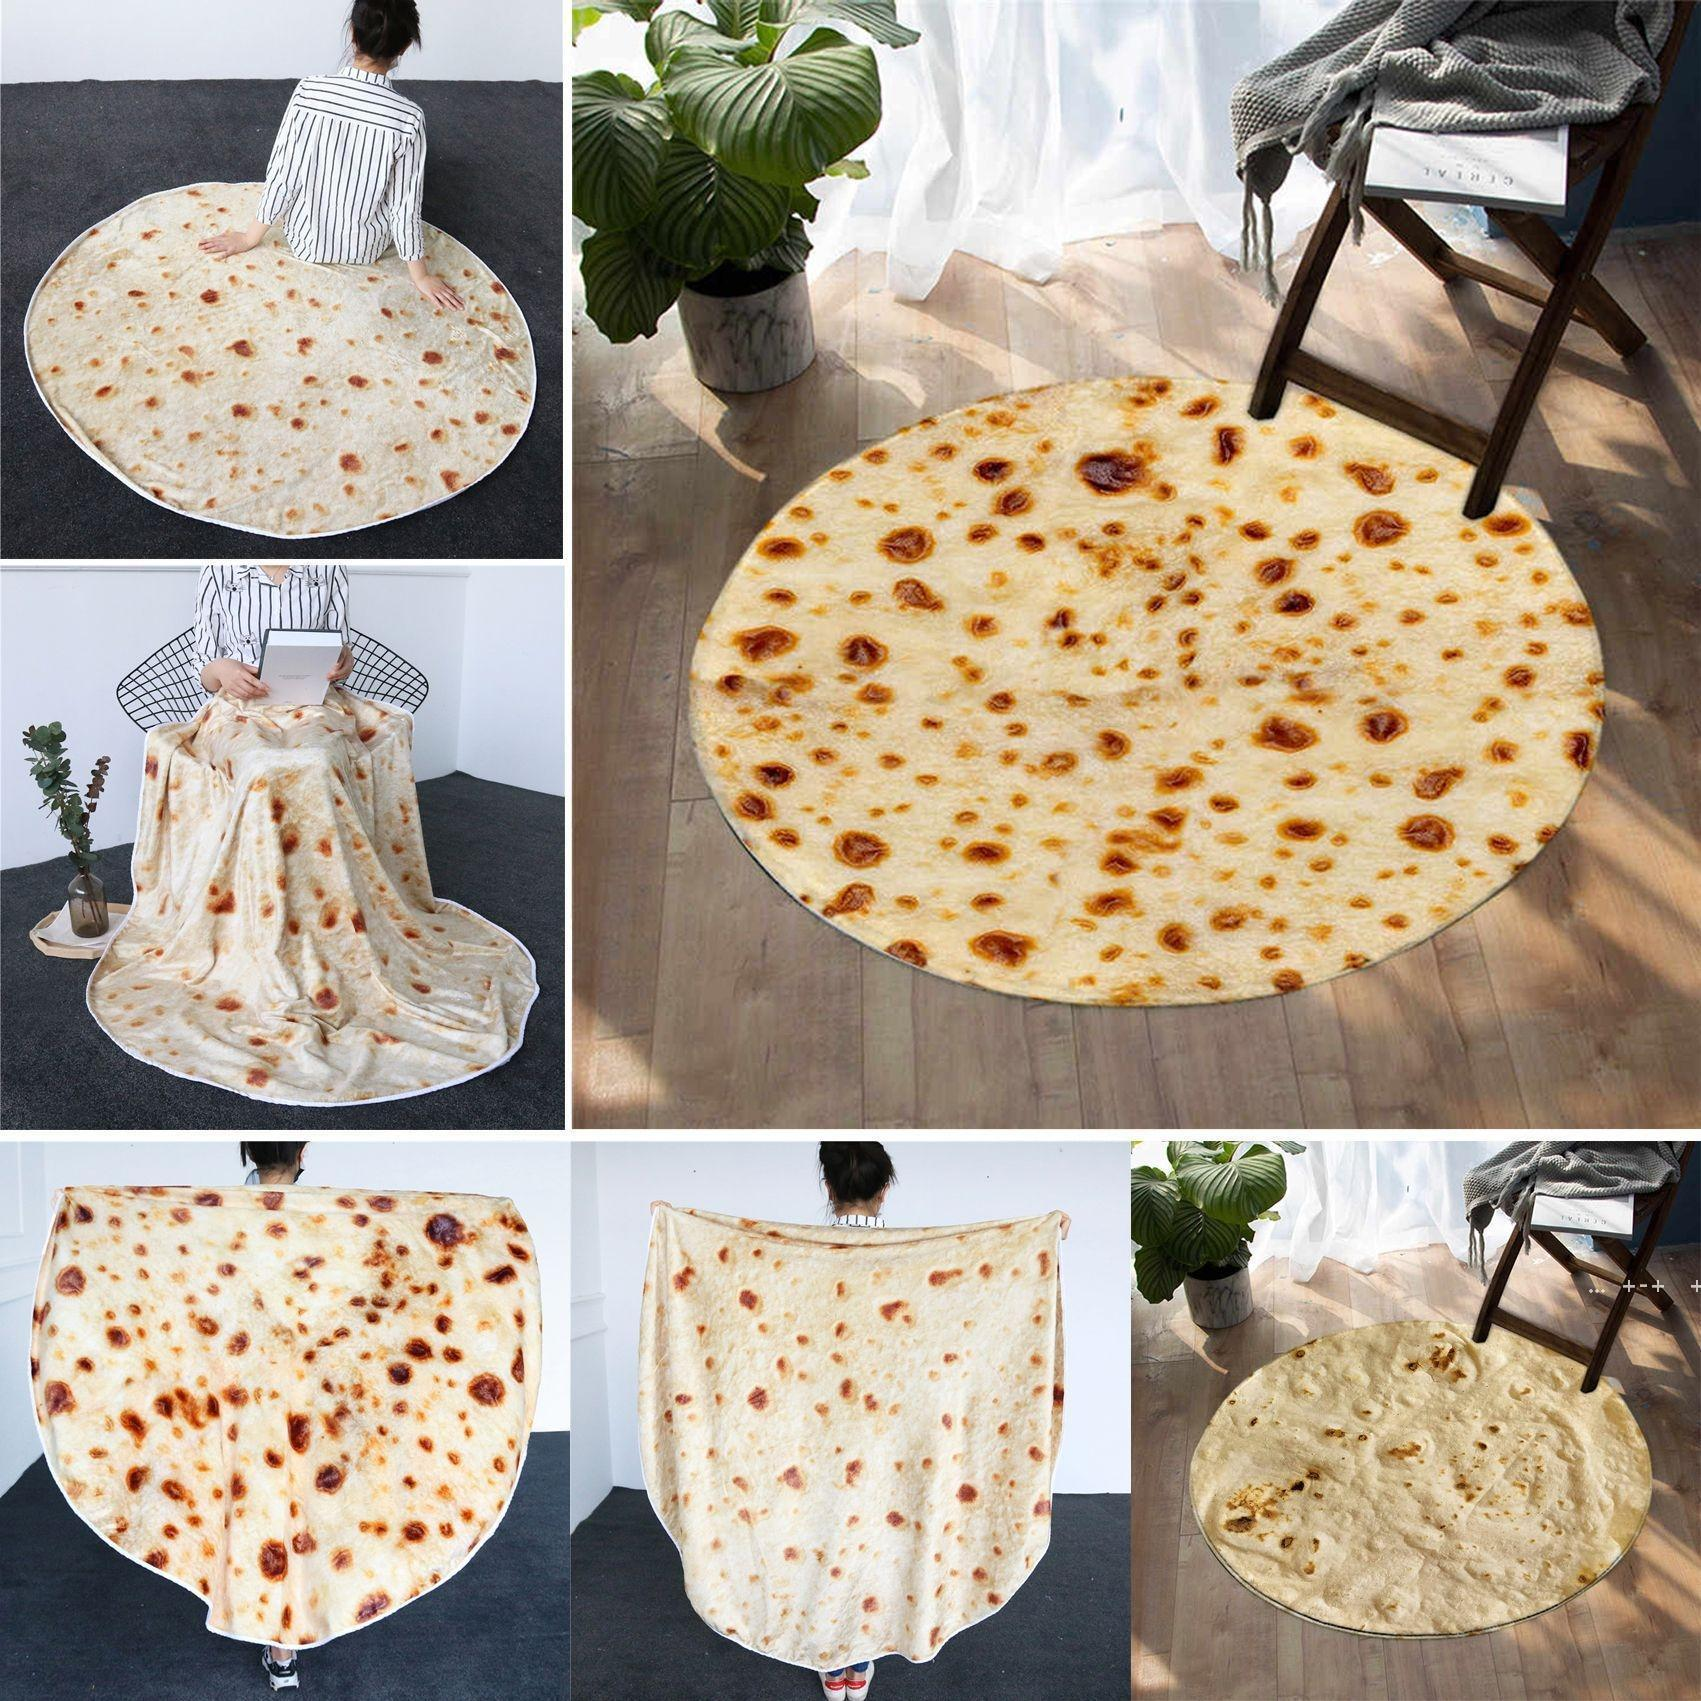 Bedding Mexican Burrito Blanket 3D Corn Tortilla Flannel Blankets for Bed Fleece Throw Funny Plush Bedspreads FWA8583